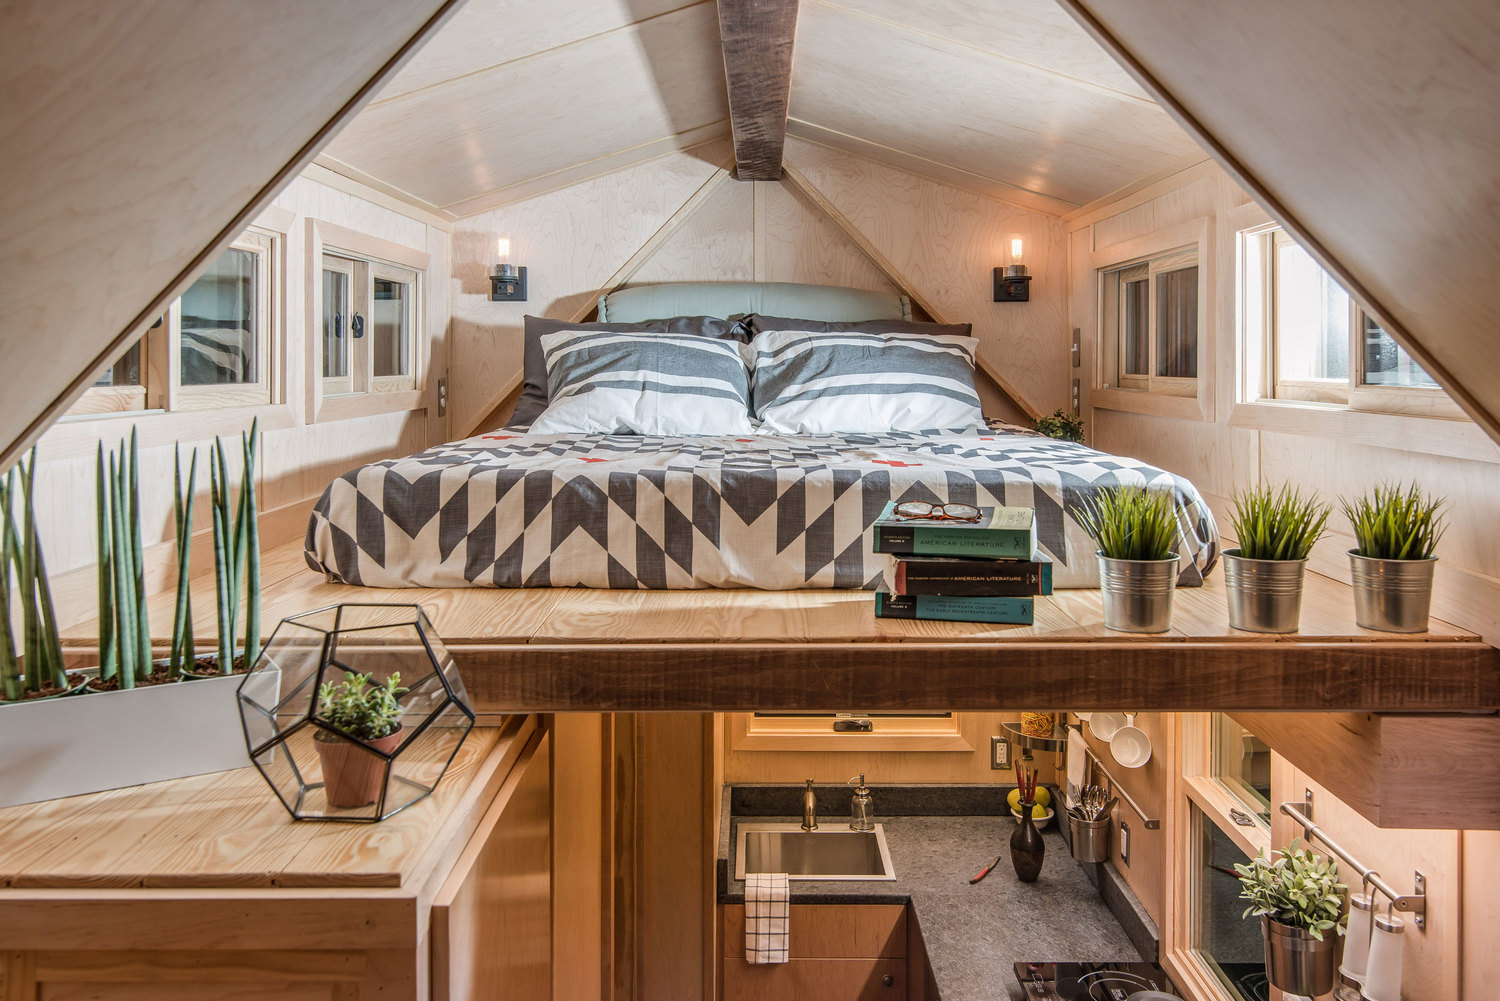 Tiny Homes | Winter Park Times on leaf house on wheels, flat pack house on wheels, 2 story house on wheels,